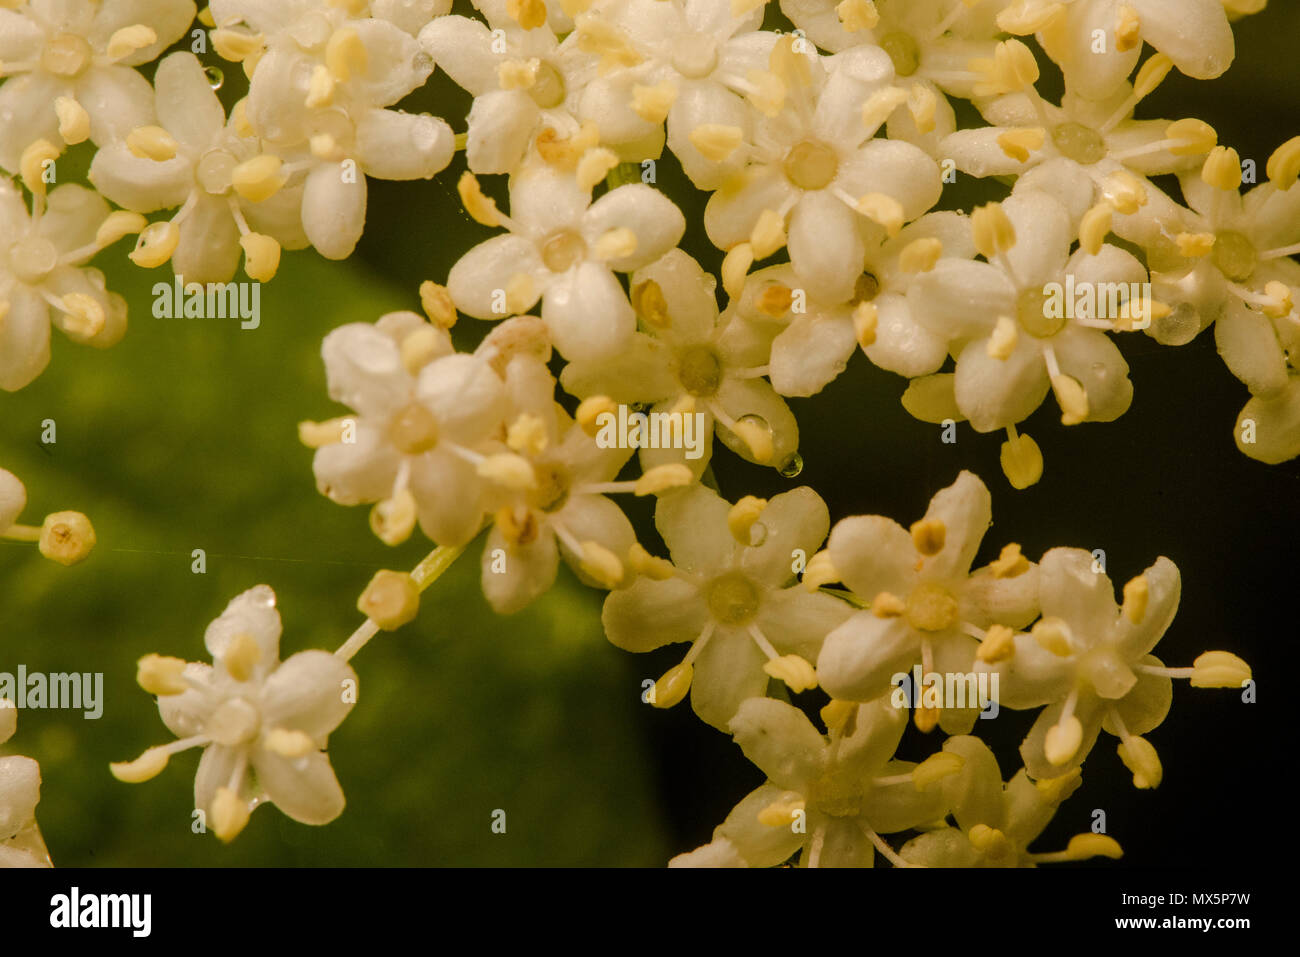 Small White Clustered Flowers Stock Photos Small White Clustered